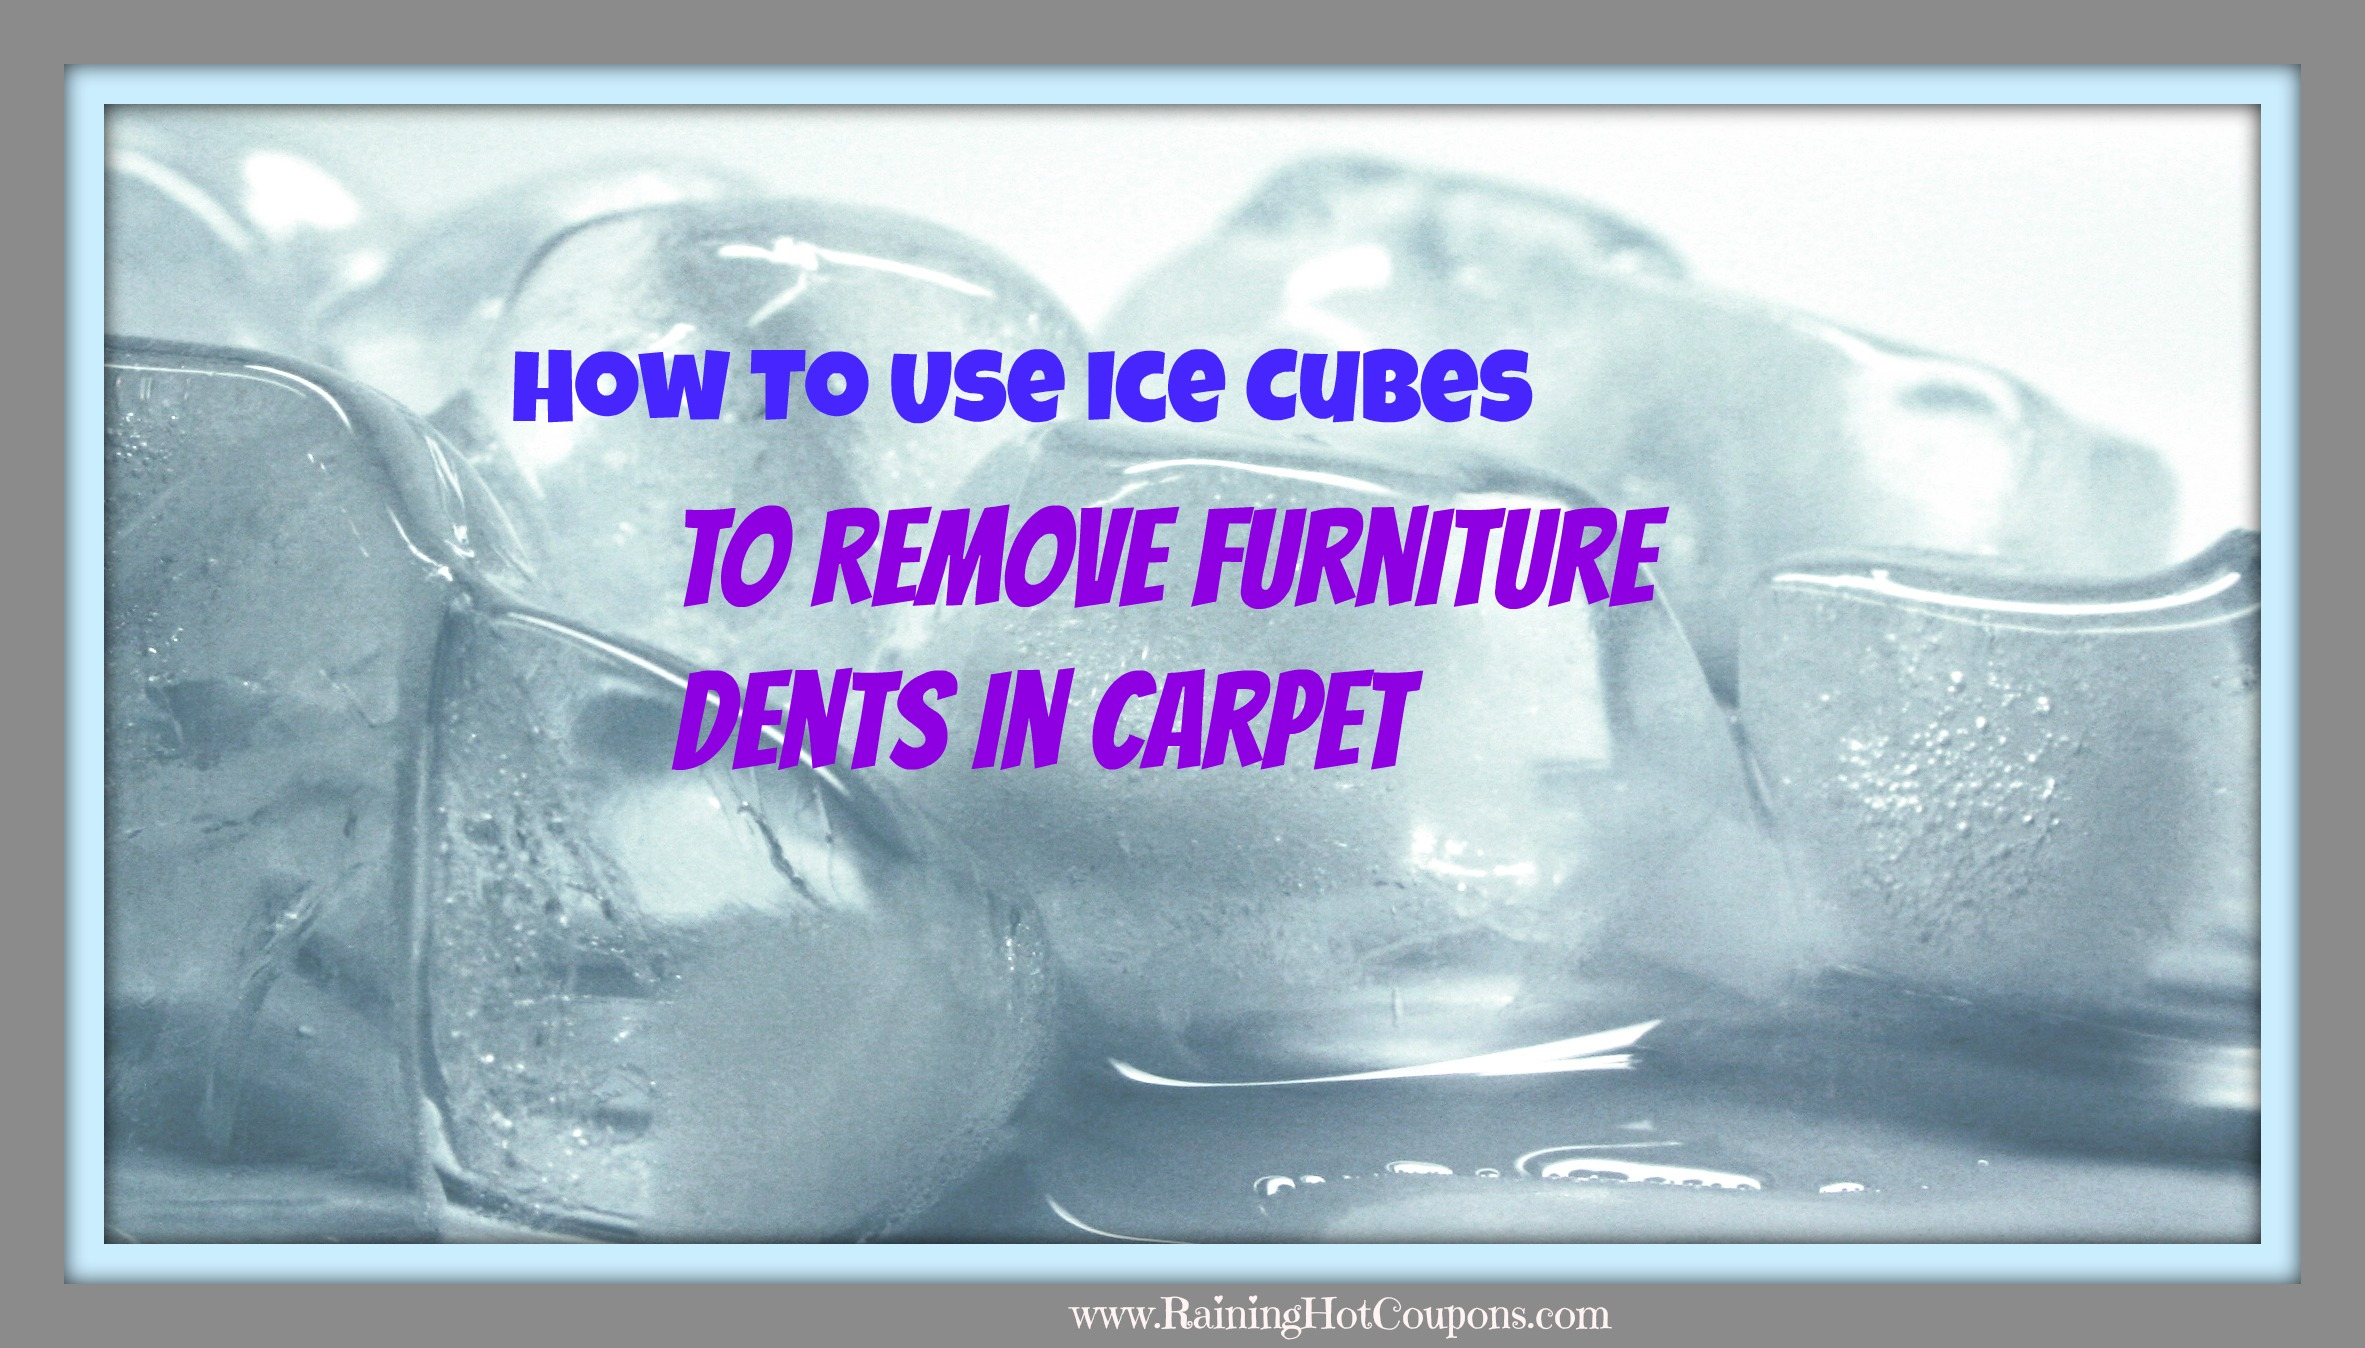 How To Use Ice Cubes To Remove Furniture Dents From Carpet